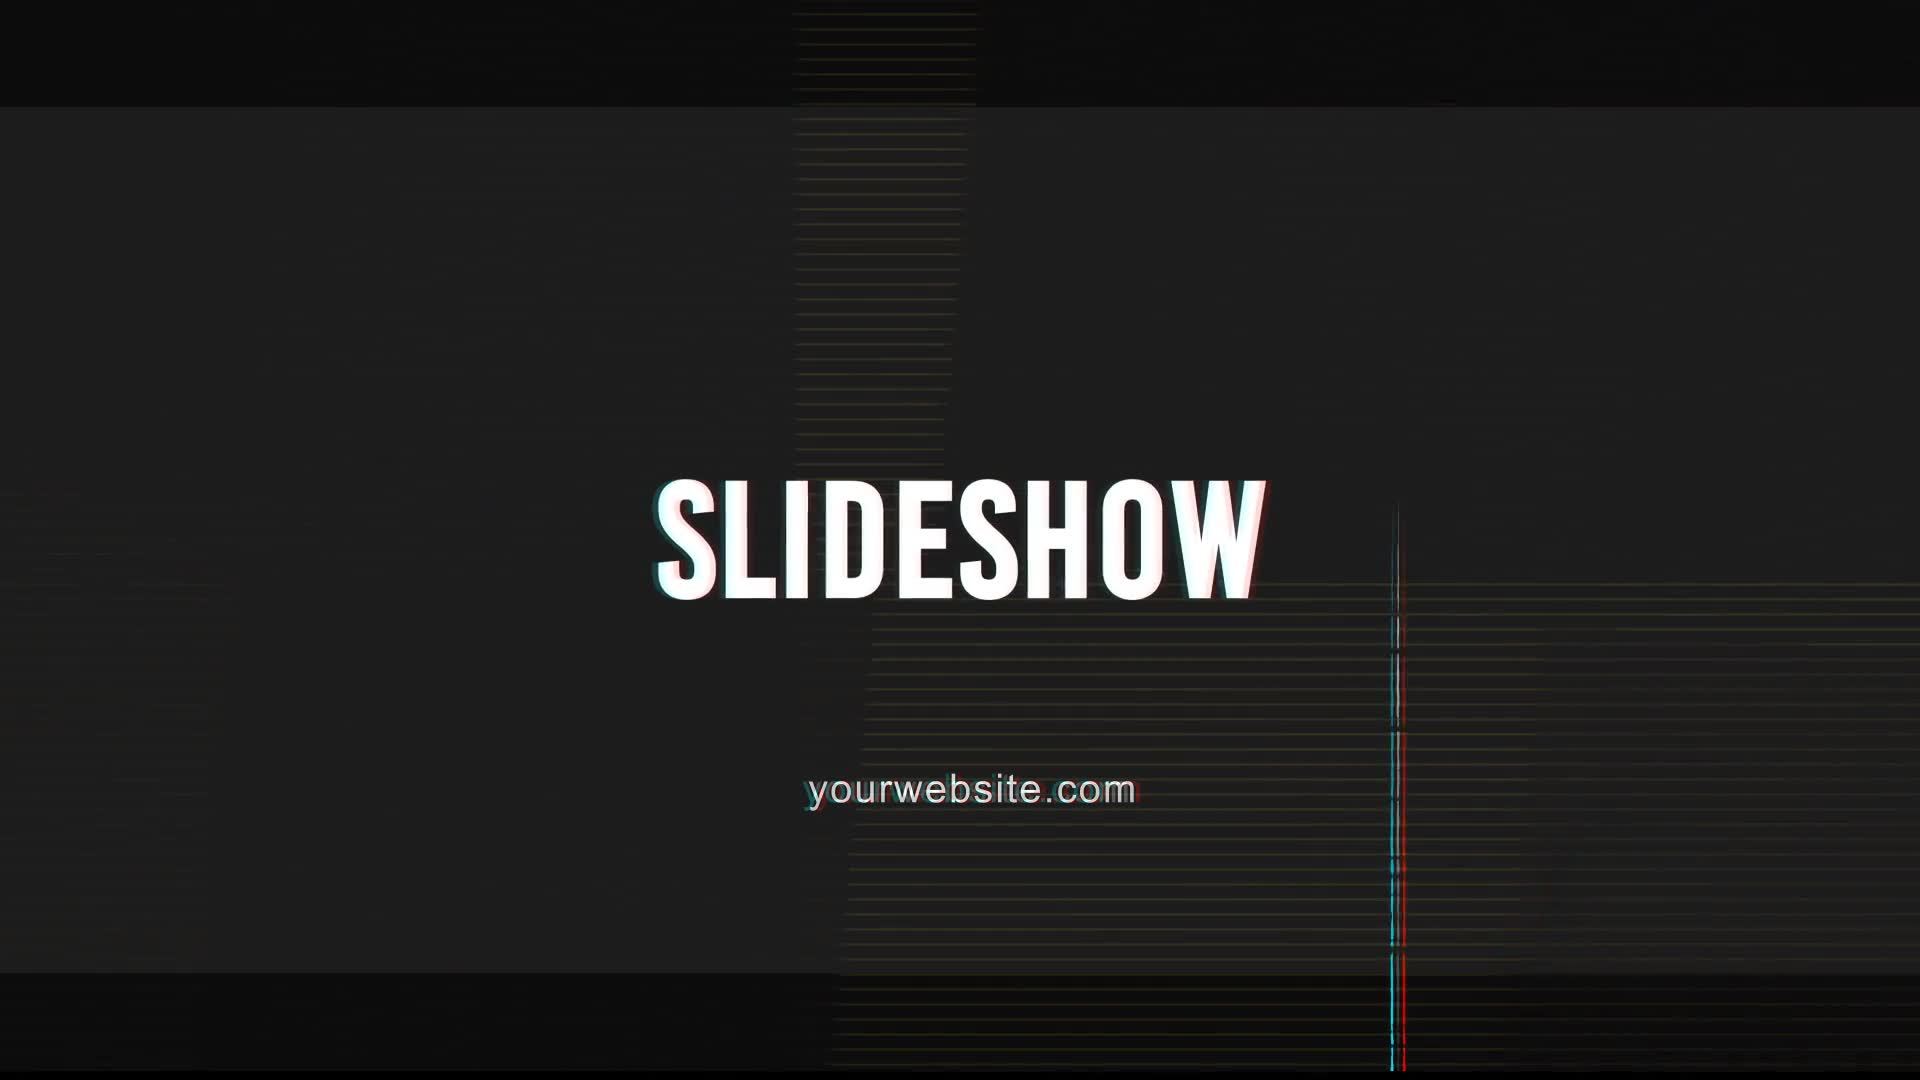 Slideshow - Download Videohive 21107978